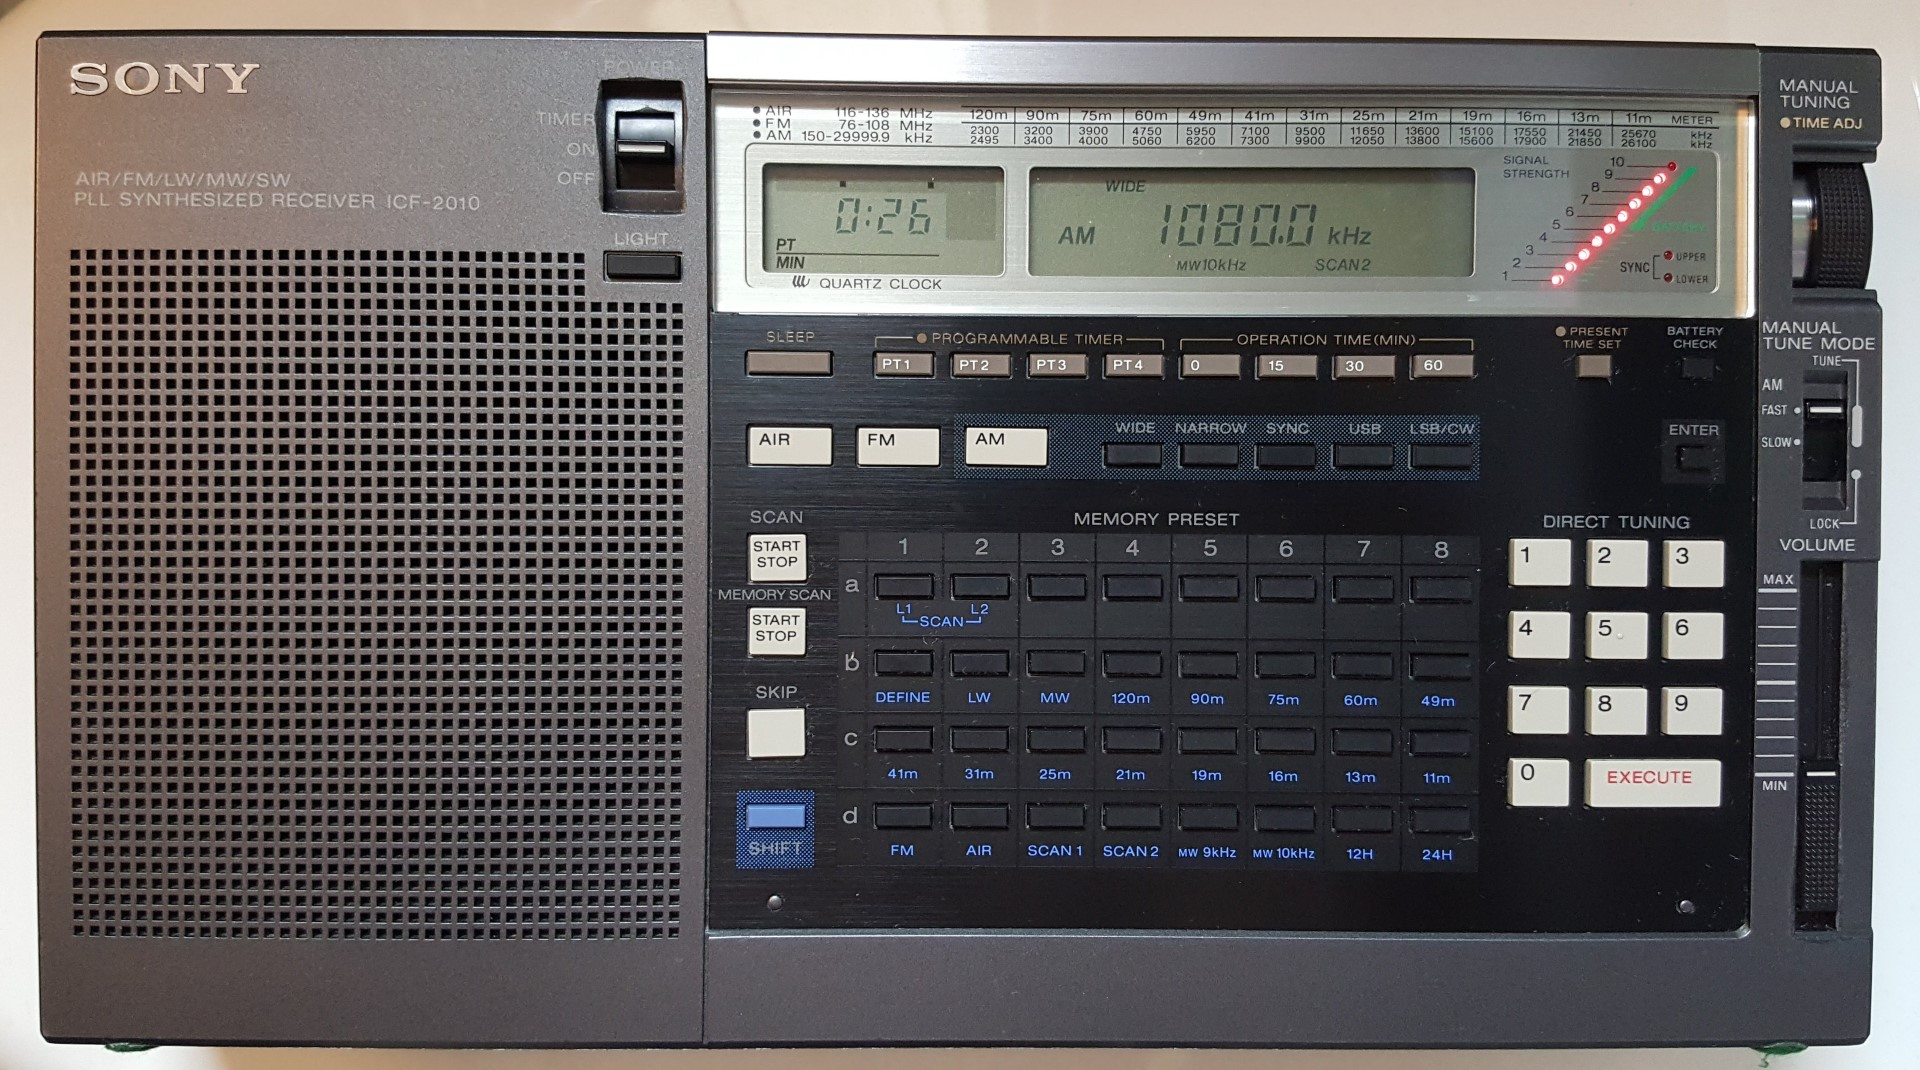 Radiojayallen Jays Radio Reviews Comparisons Restorations Hacks And Mods Easy To Use Fm Receiver Sony Icf 2010 2001d Am Sw Air Portable